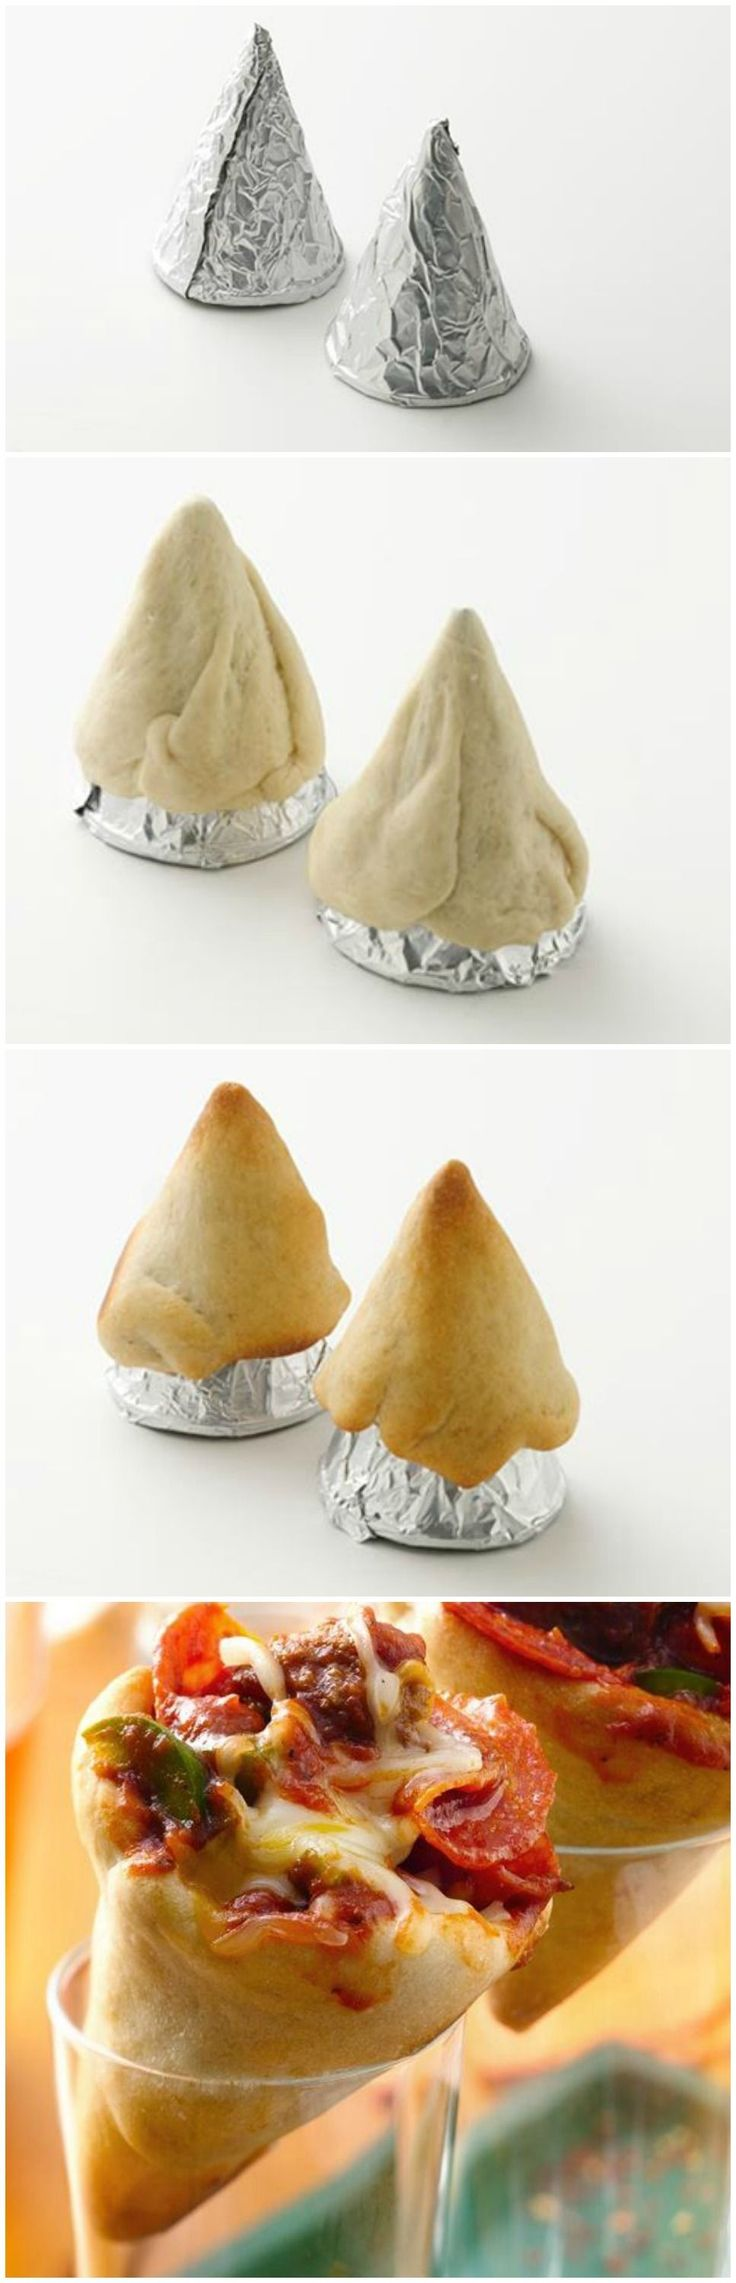 Pizza Cones recipe - from Tablespoon!